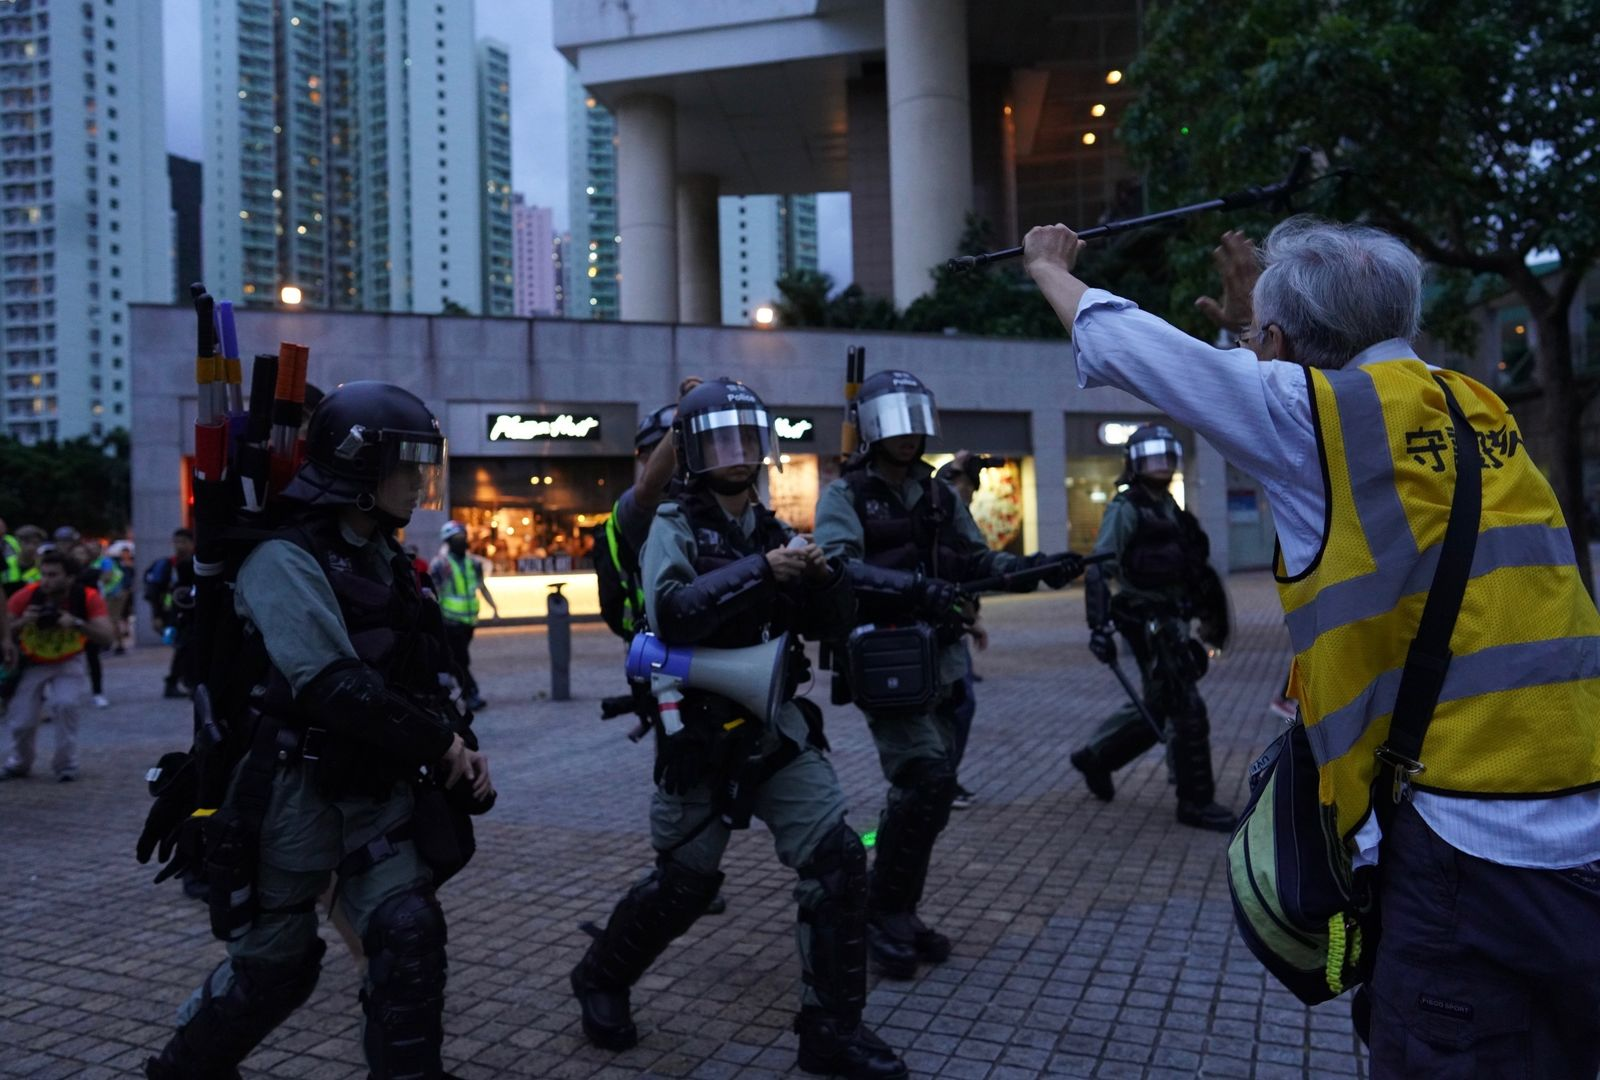 An elderly man tries to block policemen who arrive to arrest protesters at Tung Chung near airport in Hong Kong, Sunday, Sept.1, 2019.{ } (AP Photo/Vincent Yu)